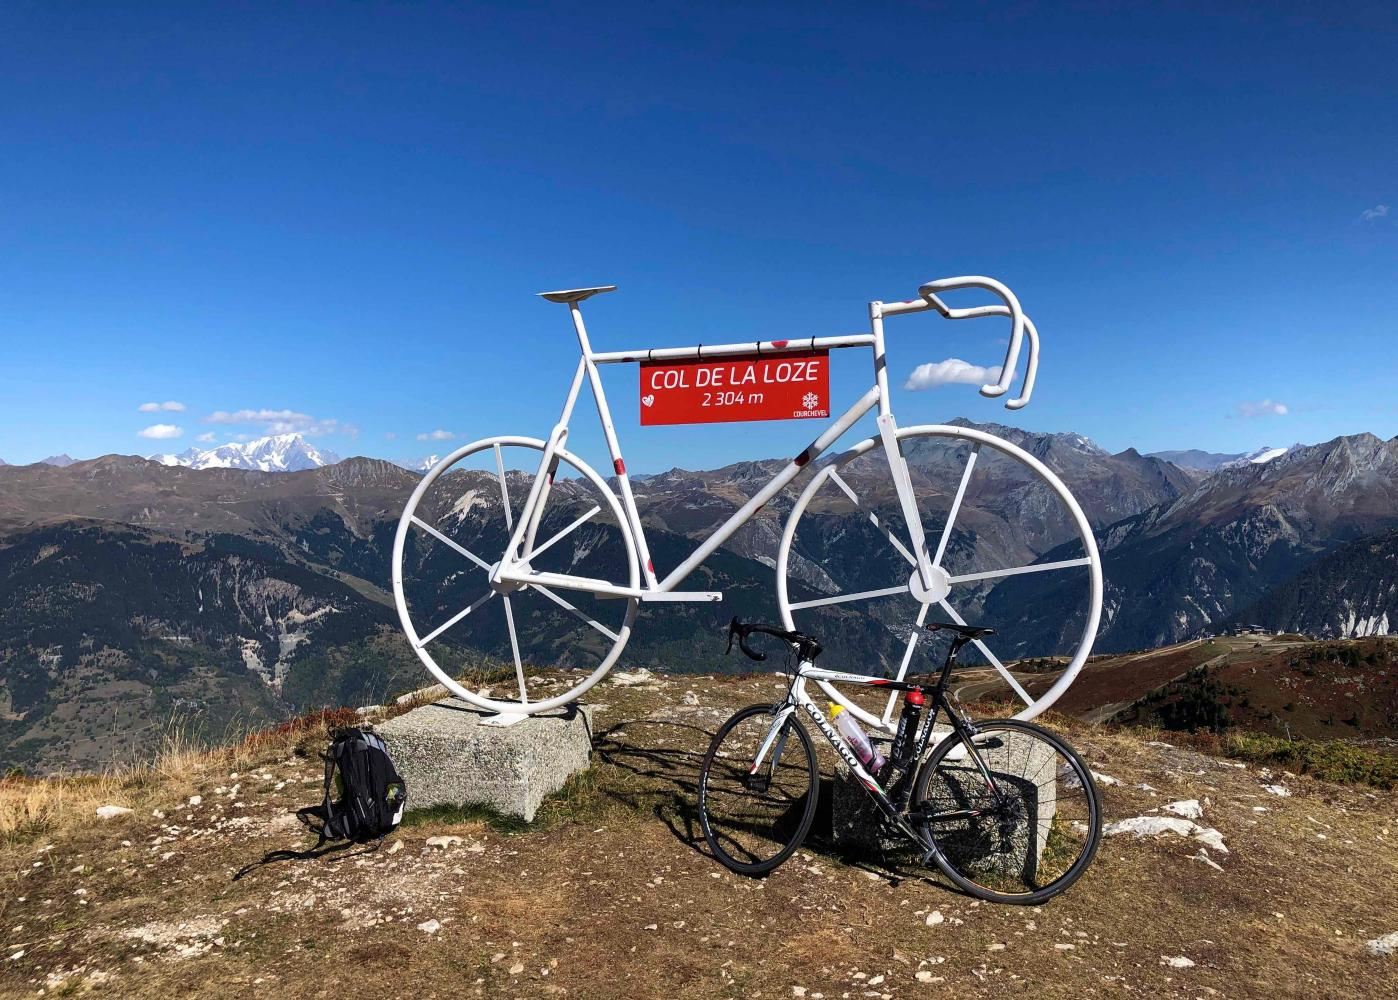 Col de la Loze (Courchevel) Bike Climb - PJAMM Cycling